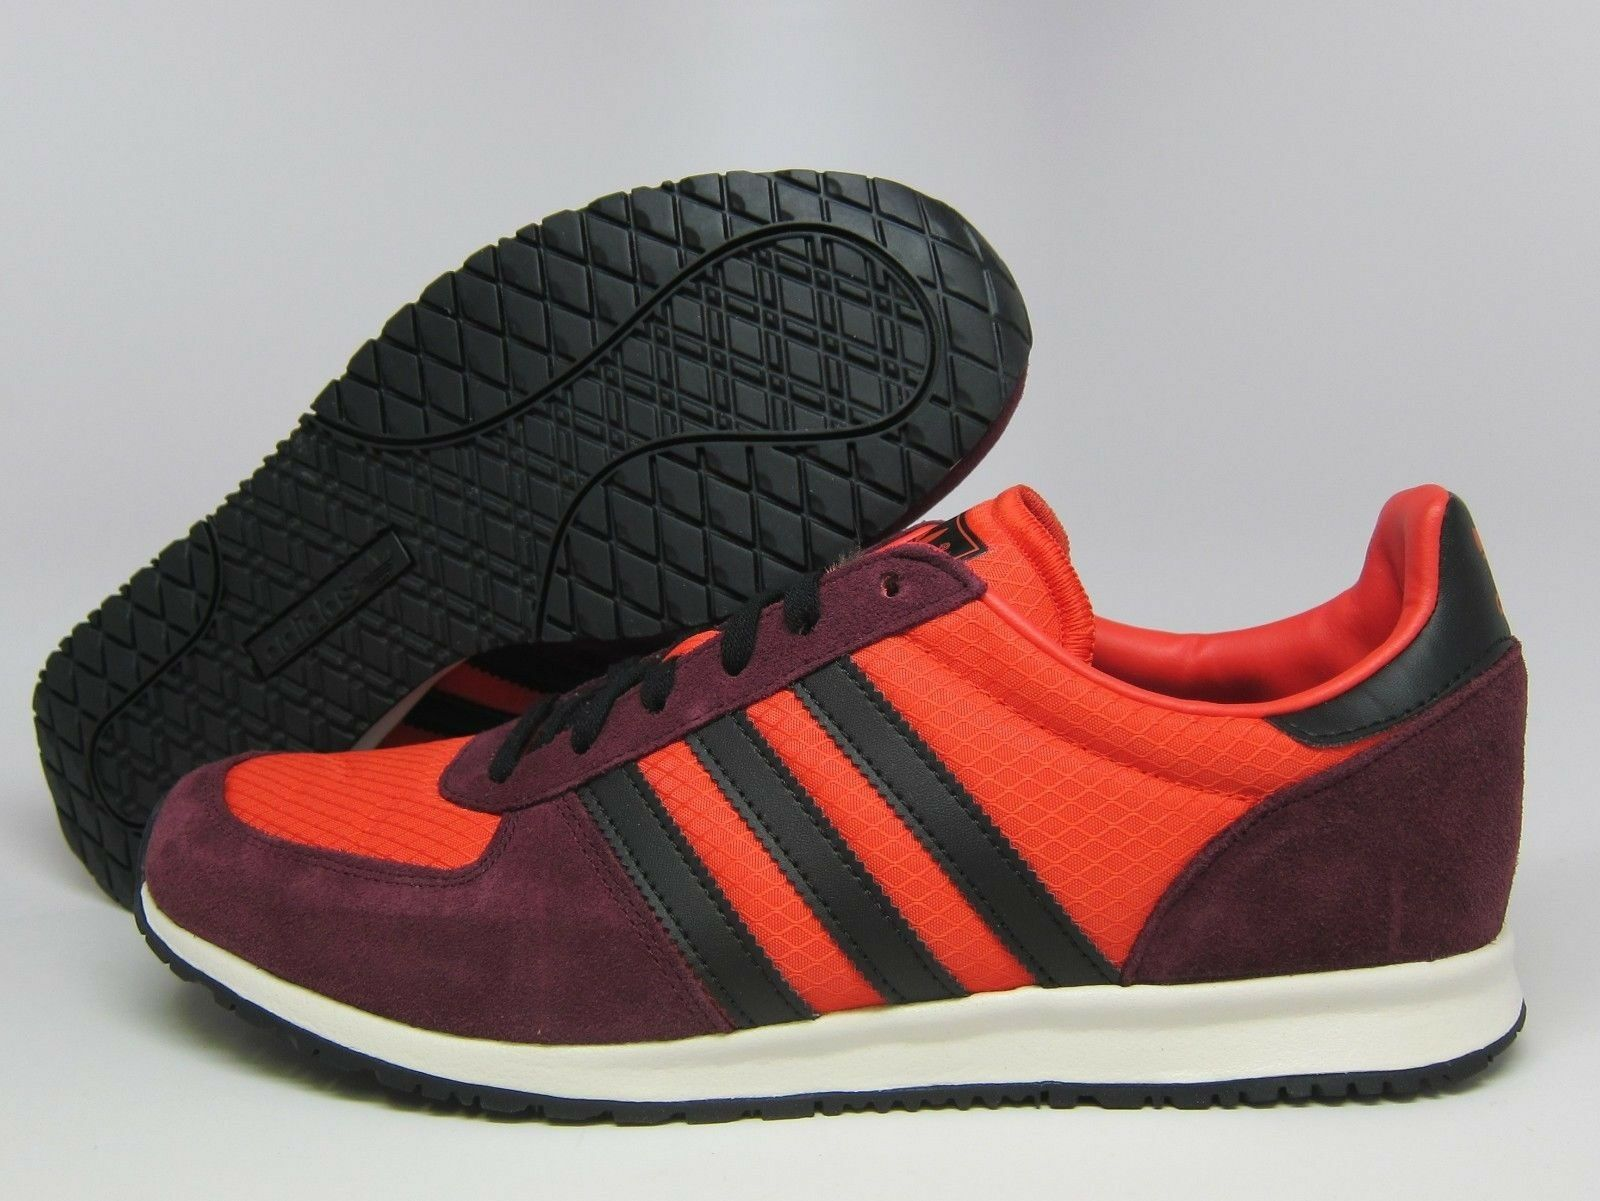 Adidas Originals leather adistar Racer Hombre Zapatos leather Originals zapatillas ZX rojo negro barato y hermoso moda 5cc4df